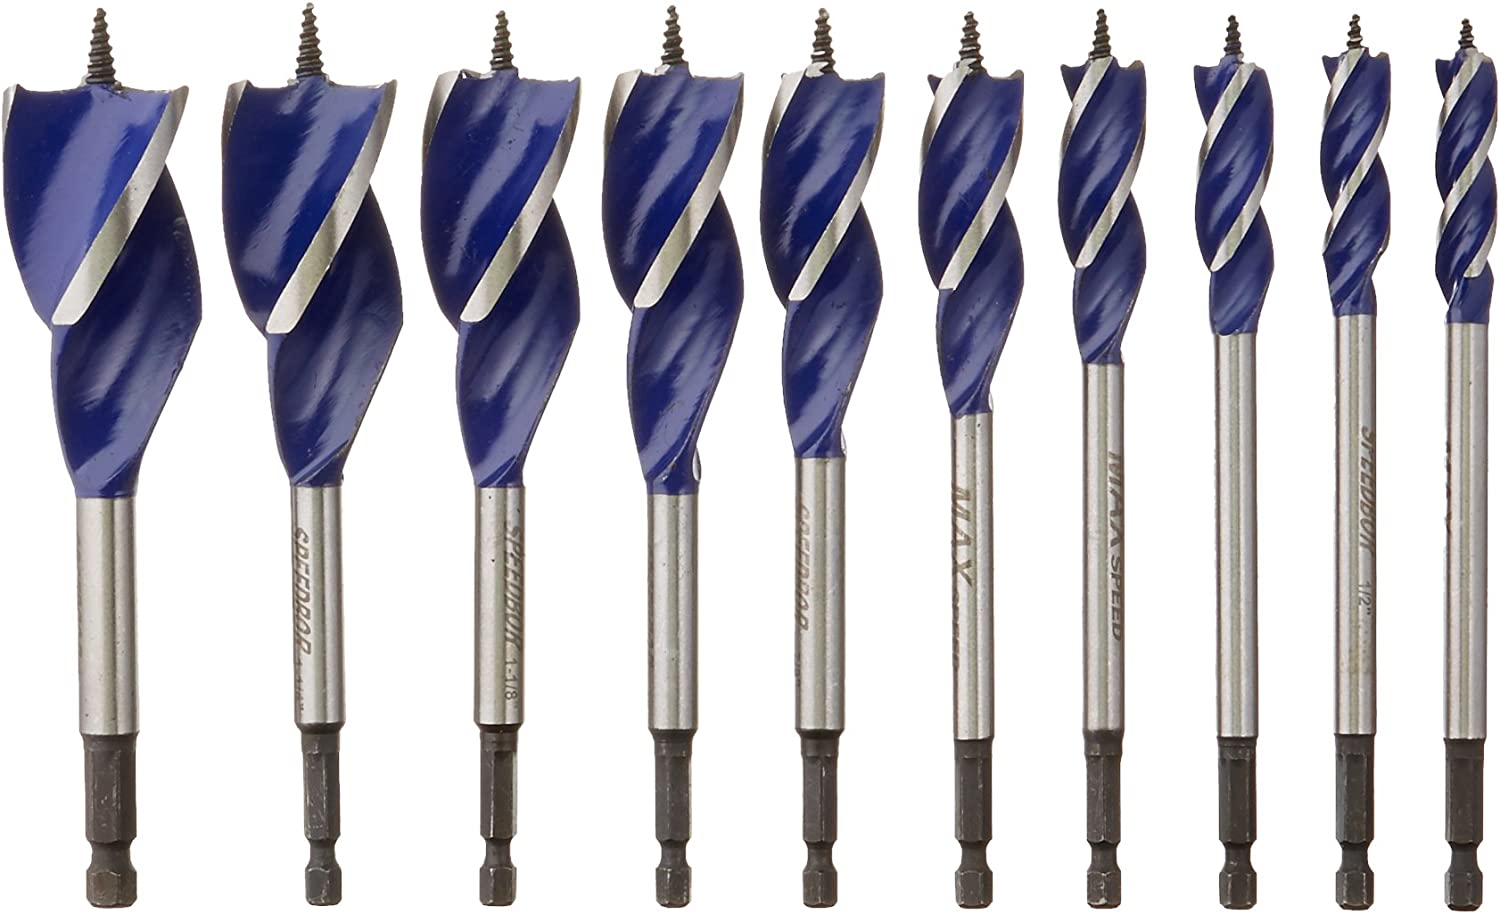 Bohrcraft Spiral Drill Bit DIN 338/ High-Speed Steel E Split Point Type TI Profi Plus 10/ mm in Quadro Pack Pack of 5/ 11410301000